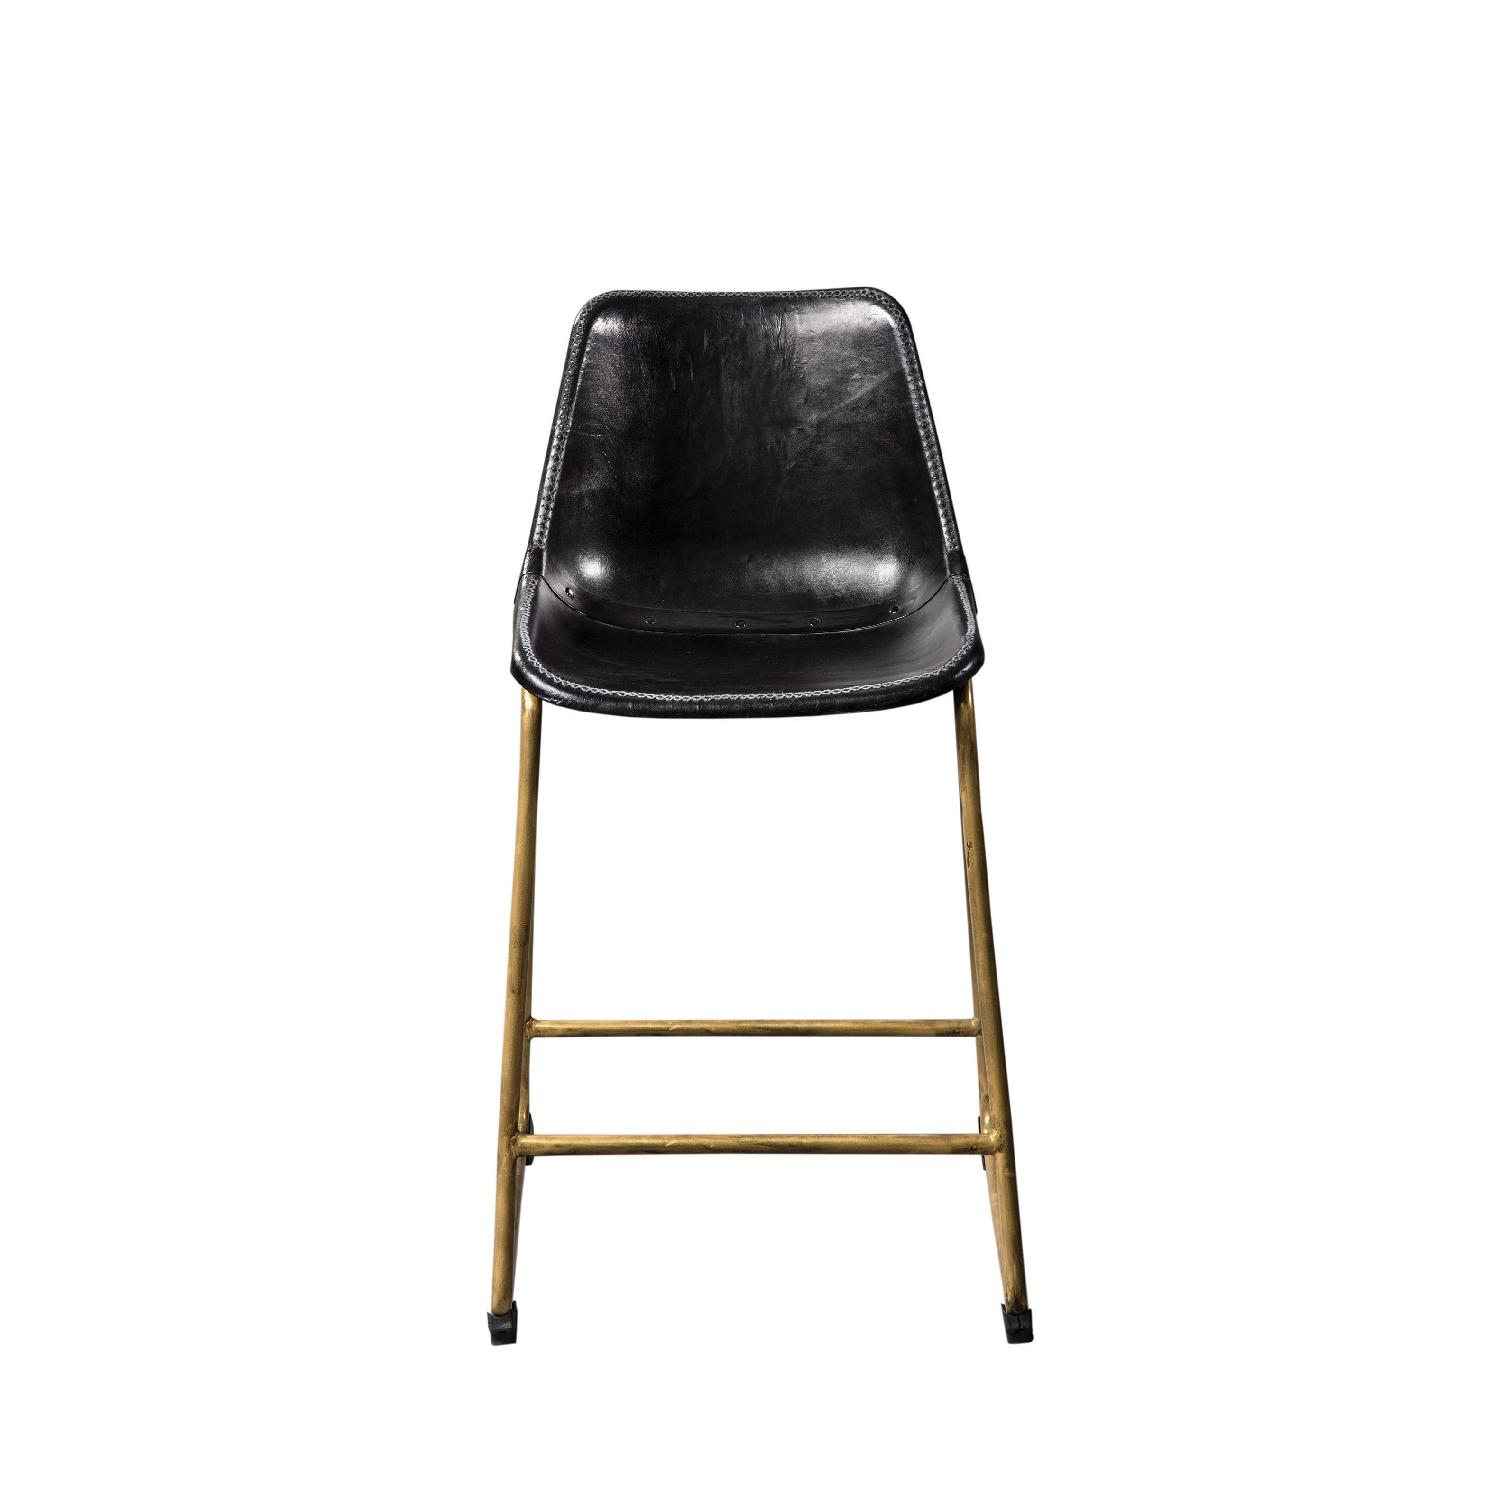 Counter Height Chair w/ Black Seat & Brass Base - image-4